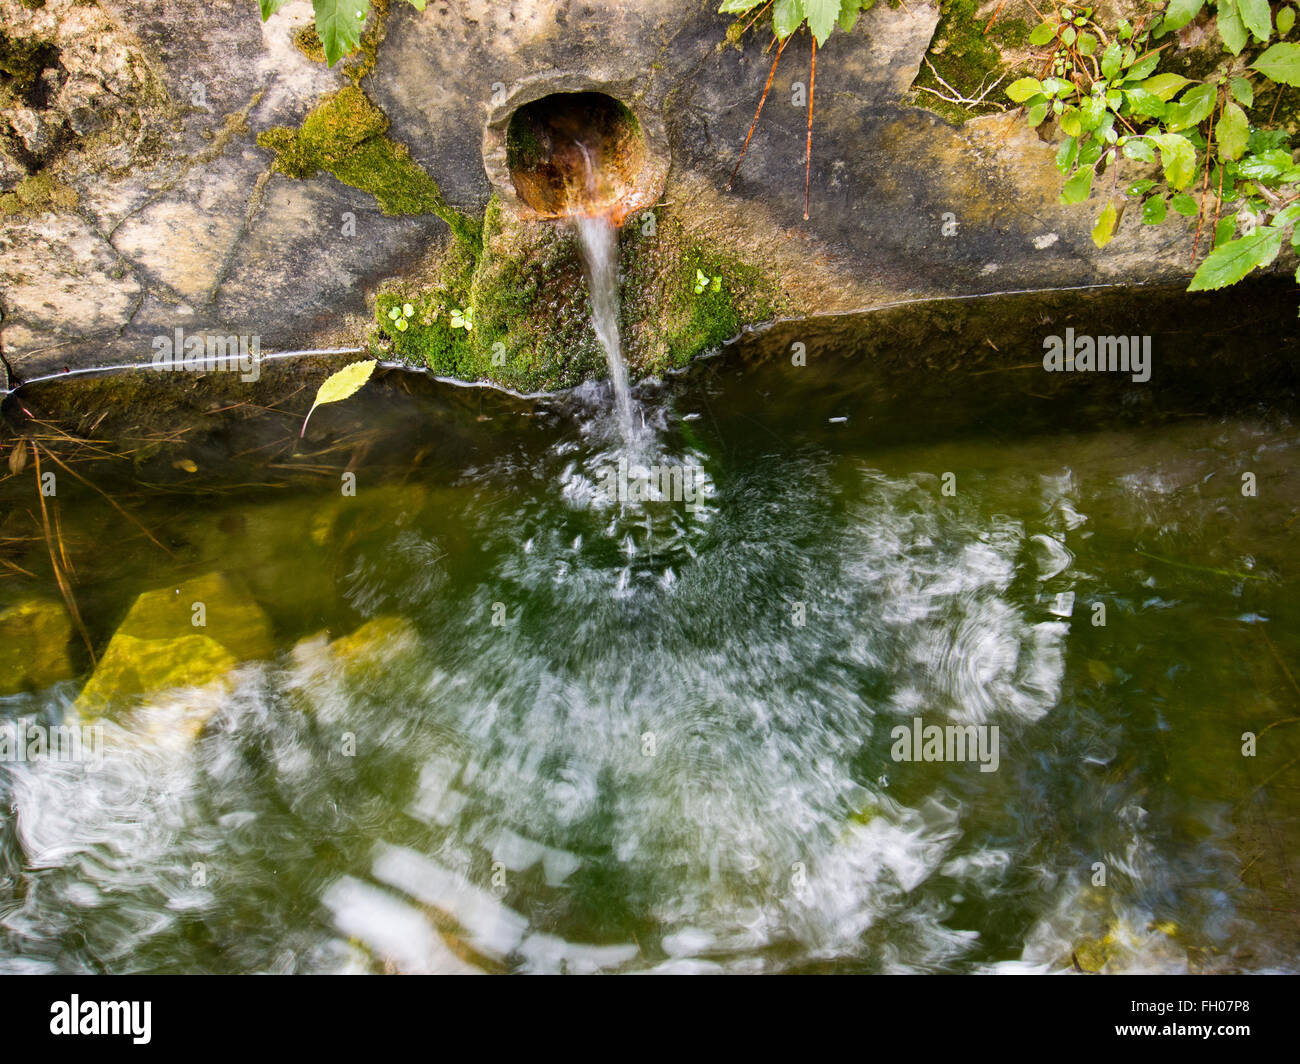 Abstract Water Pipe Stock Photos Amp Abstract Water Pipe Stock Images